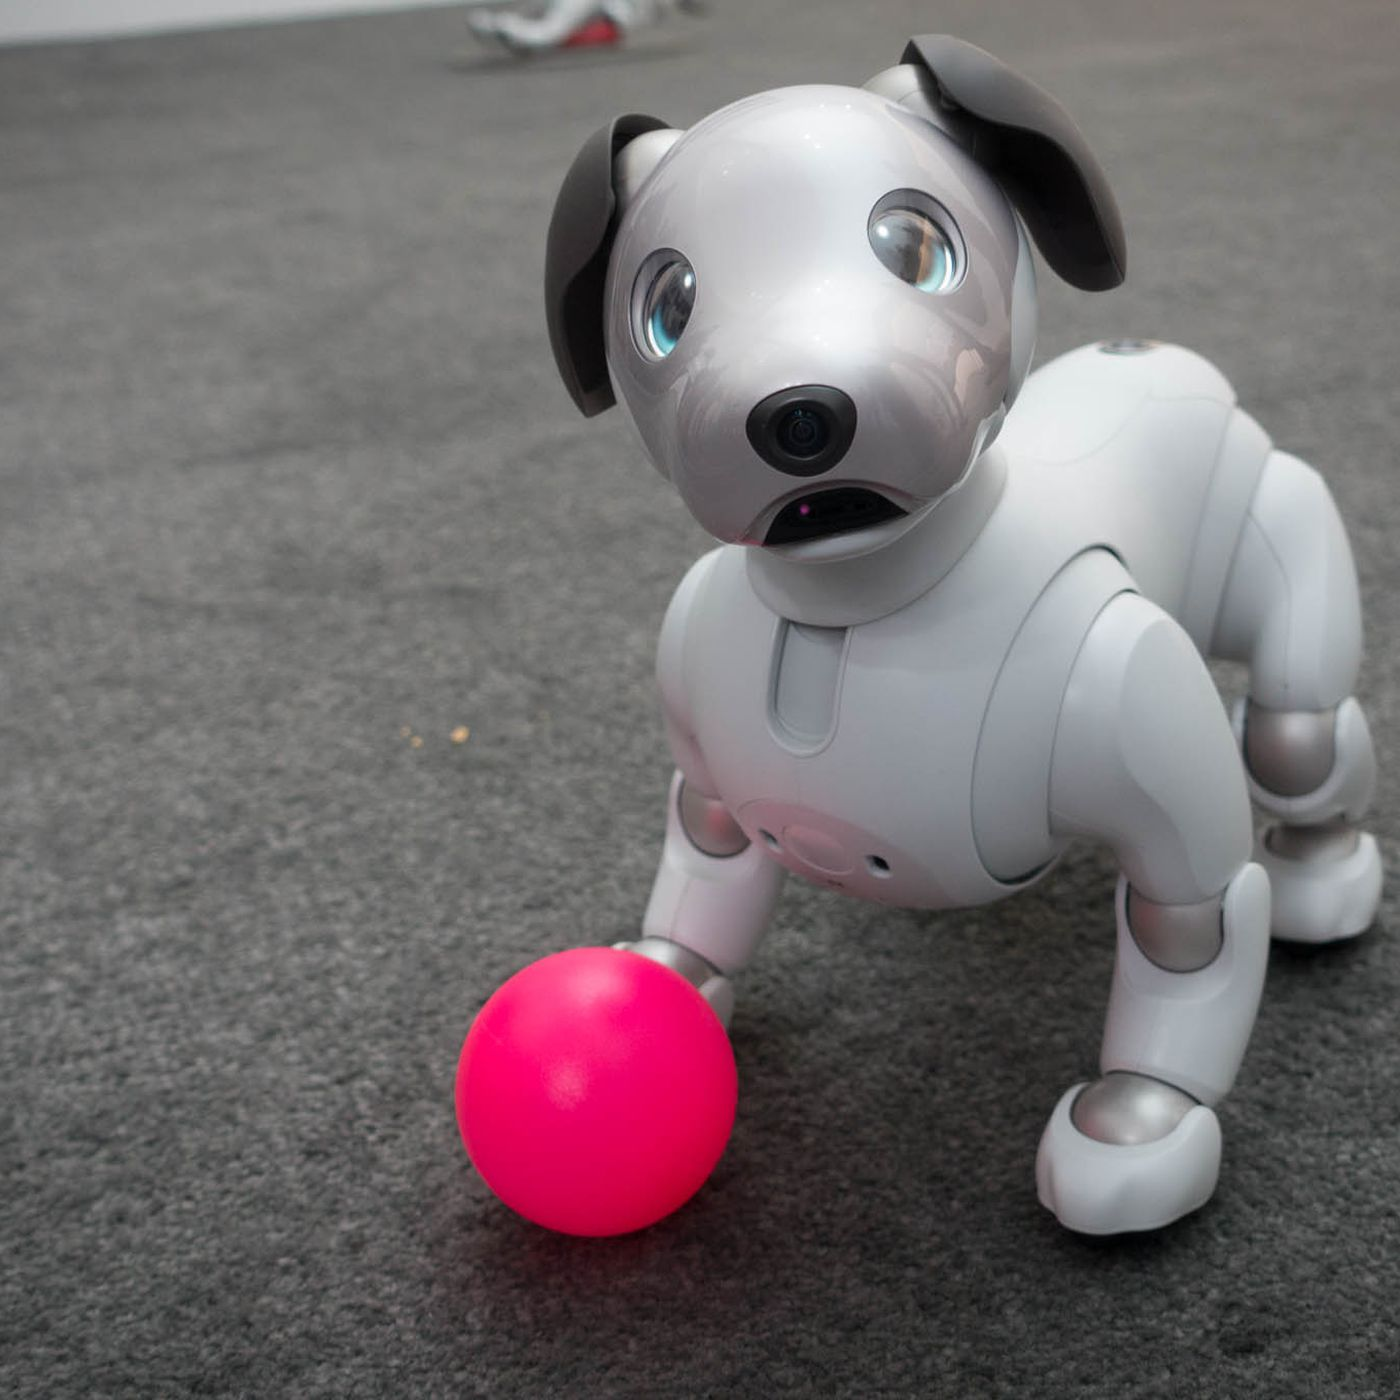 I played with Sony's new Aibo robot dog, and I miss it already - The